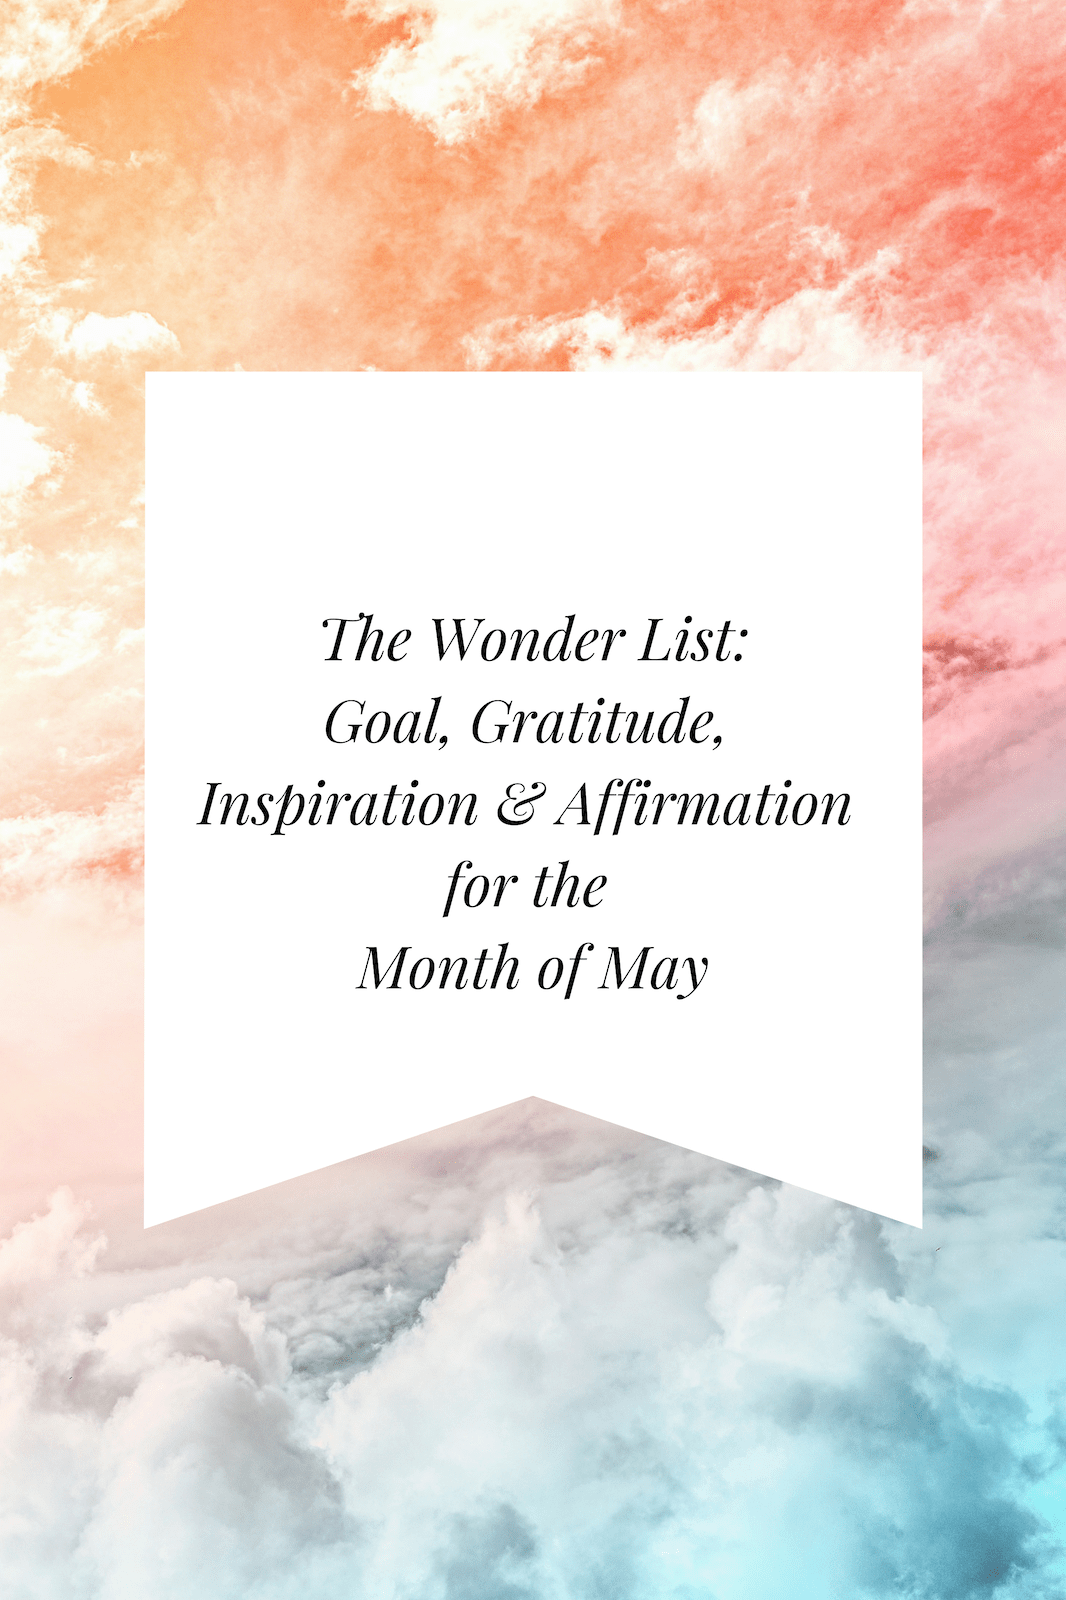 The Wonder List May Image